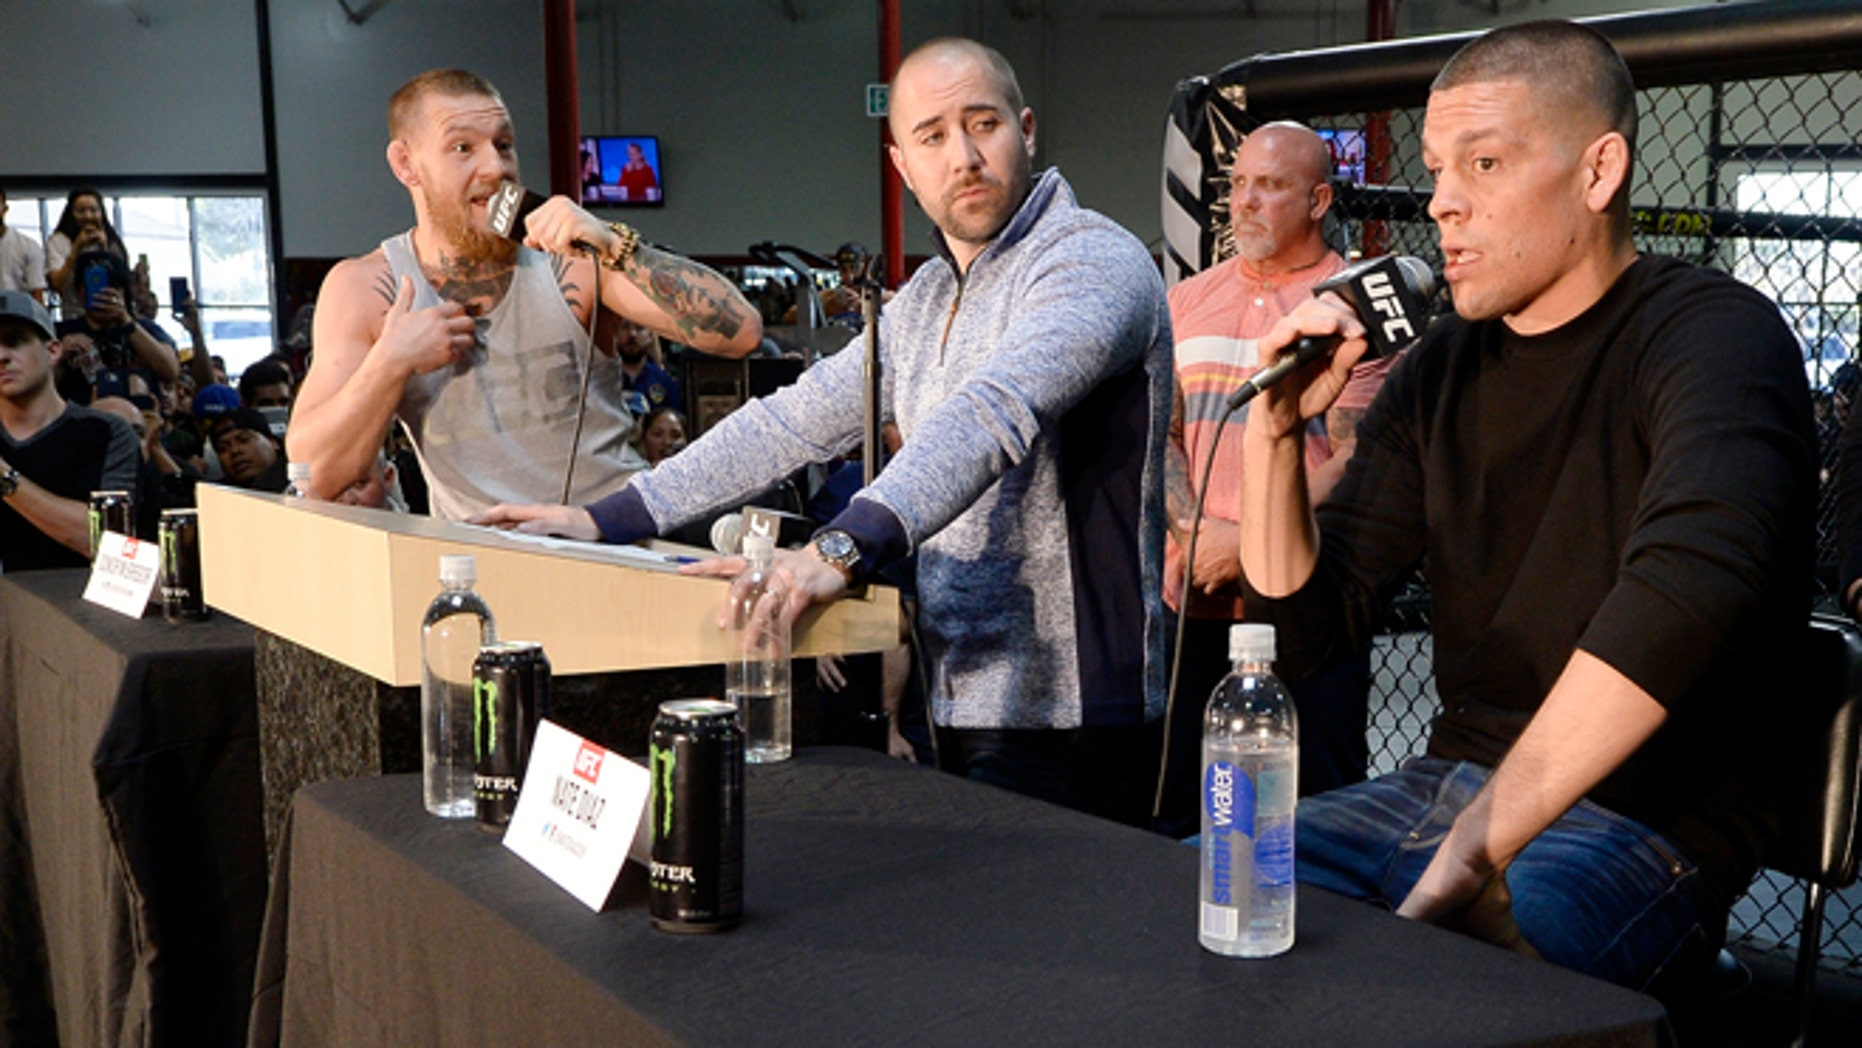 TORRANCE, CA - FEBRUARY 24: UFC featherweight champion Conor McGregor (L) and lightweight contender Nate Diaz (R) participate in a news conference with moderator Dave Sholler (C), UFC vice president of public relations, at UFC Gym February 24, 2016, in Torrance, California. (Photo by Kevork Djansezian/Getty Images)